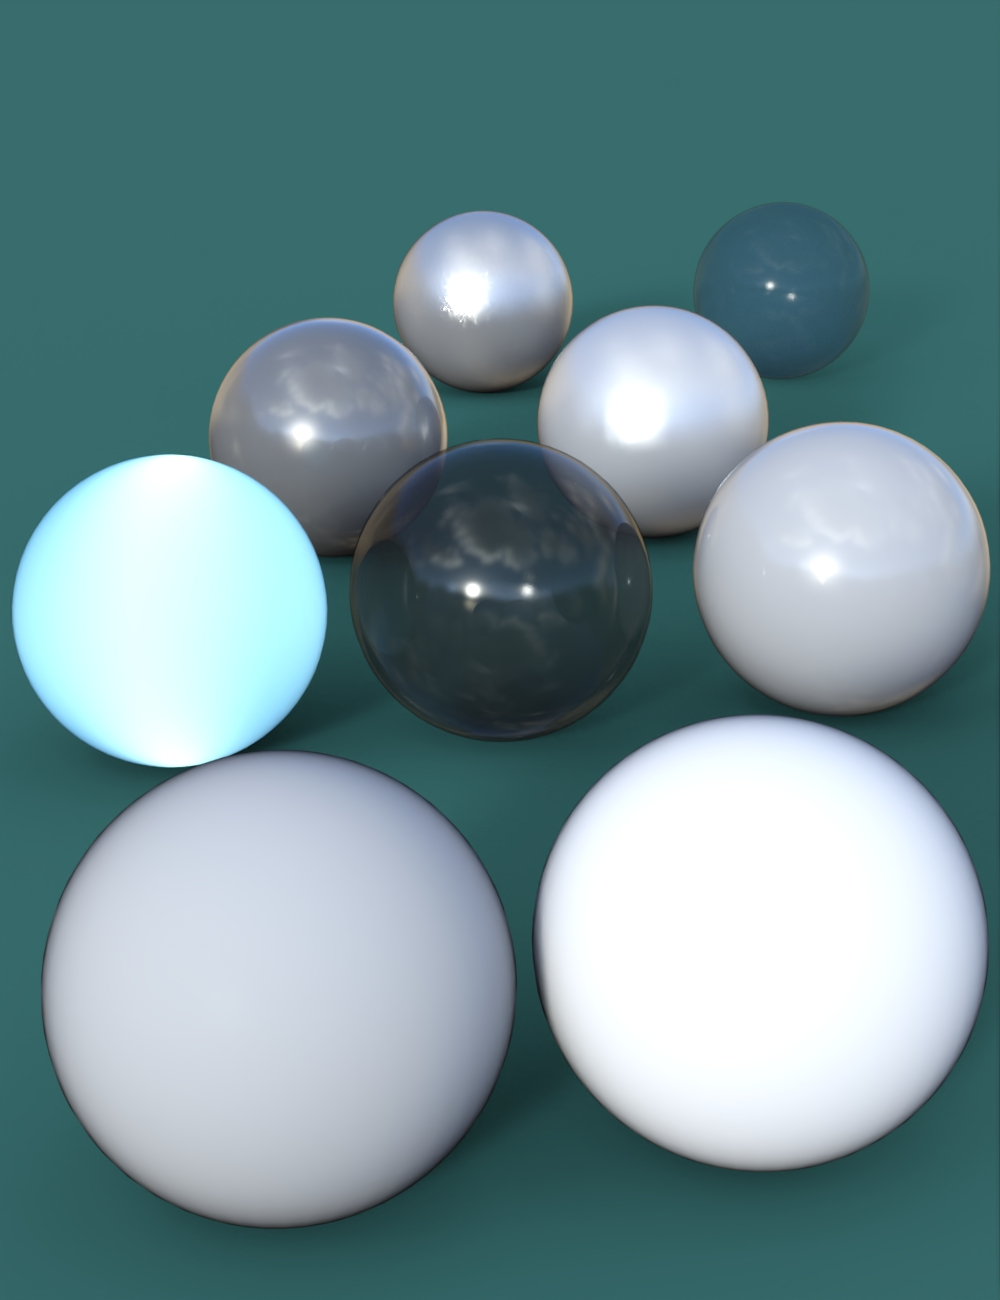 My Shaders by: JeffersonAF, 3D Models by Daz 3D